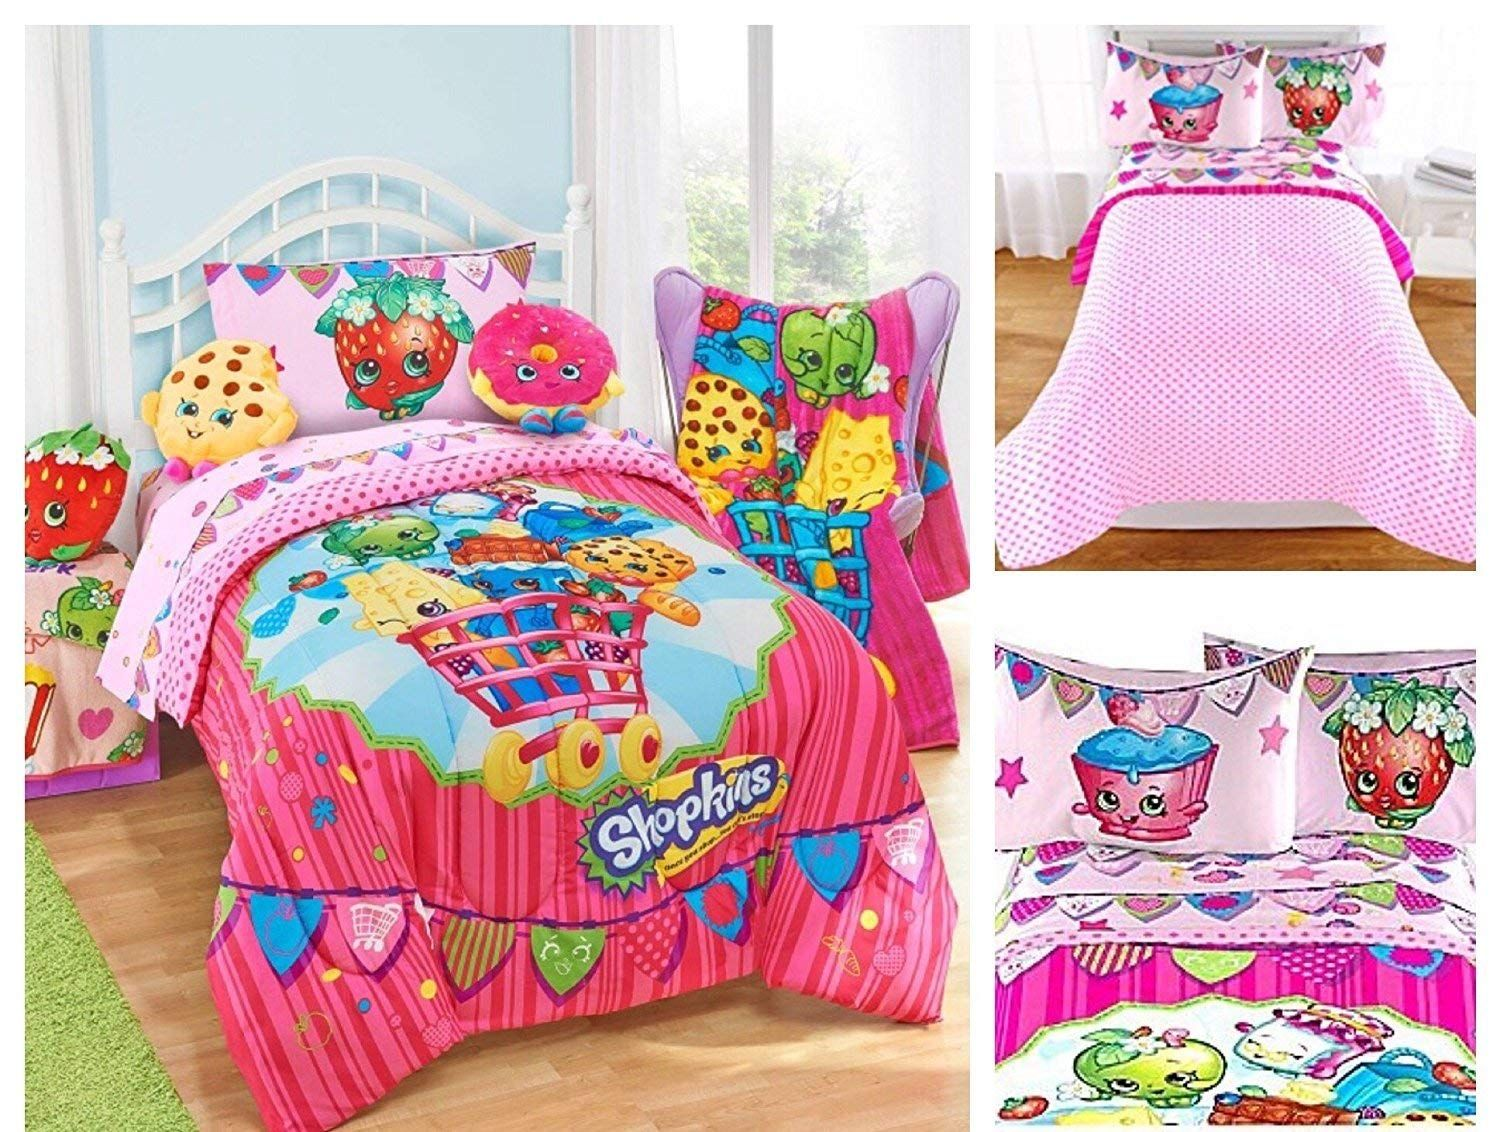 Shopkins Kids 4 Piece Bed In A Bag Twin Bedding Set